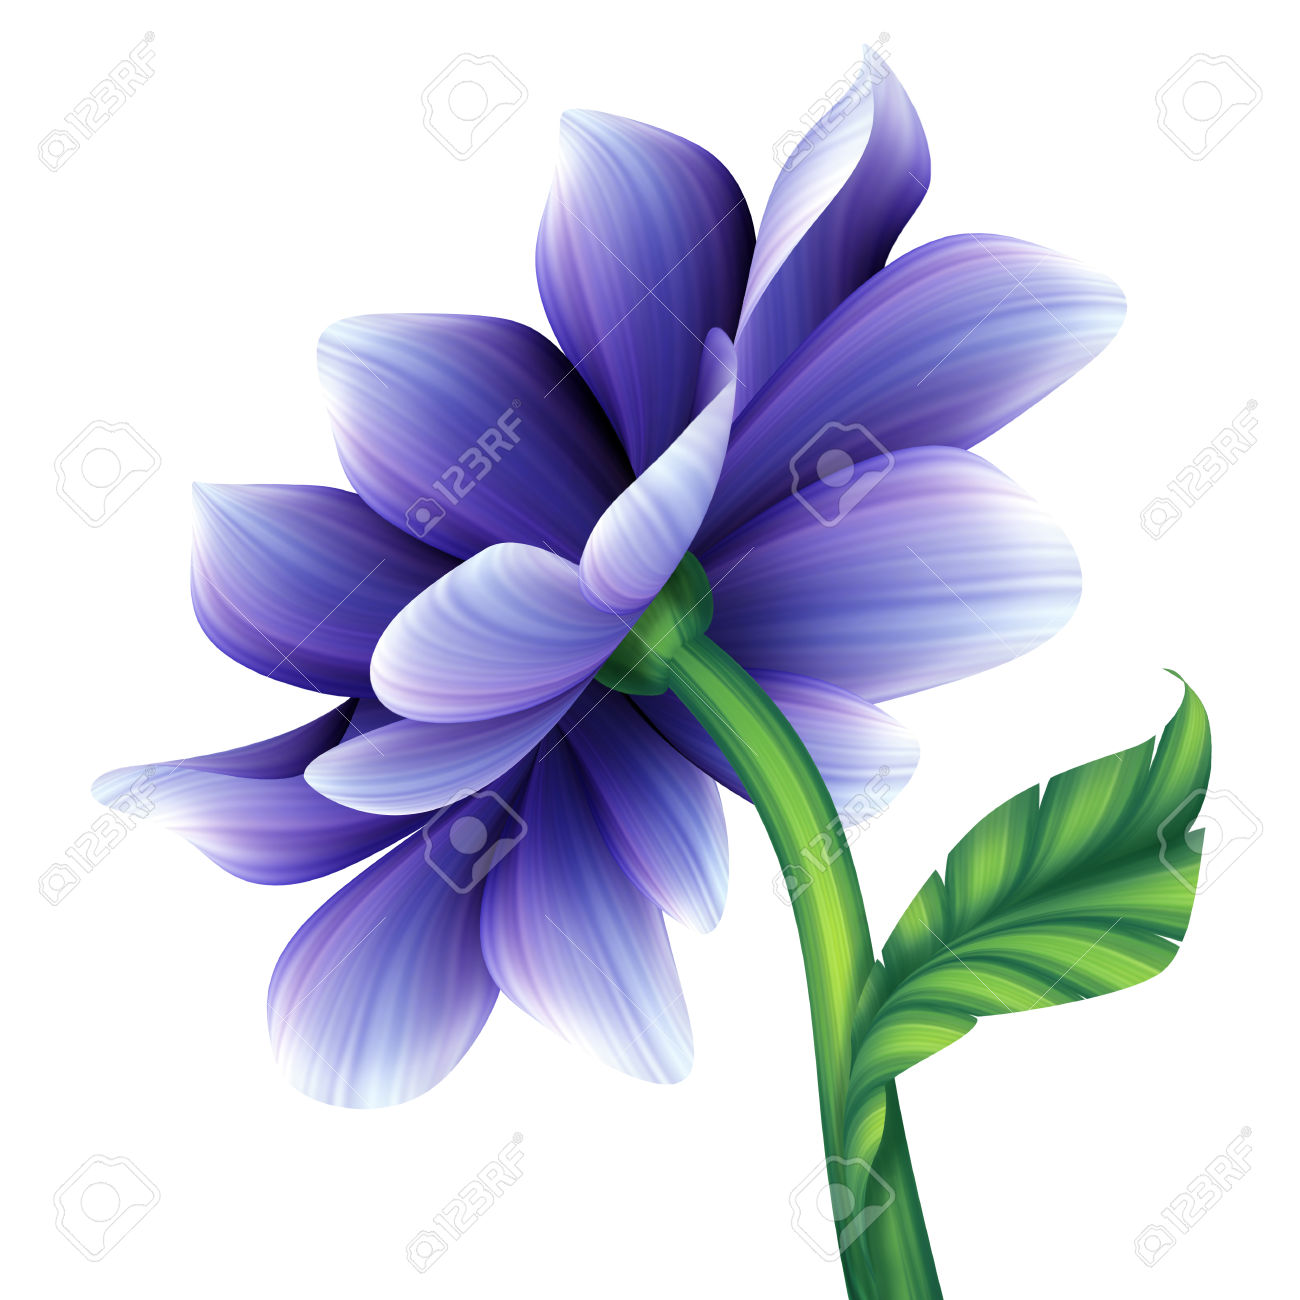 Flower clipart 60 png clipart free download violet flower clip art #60 | 66 Violet Flower Clipart | Clipart Fans clipart free download